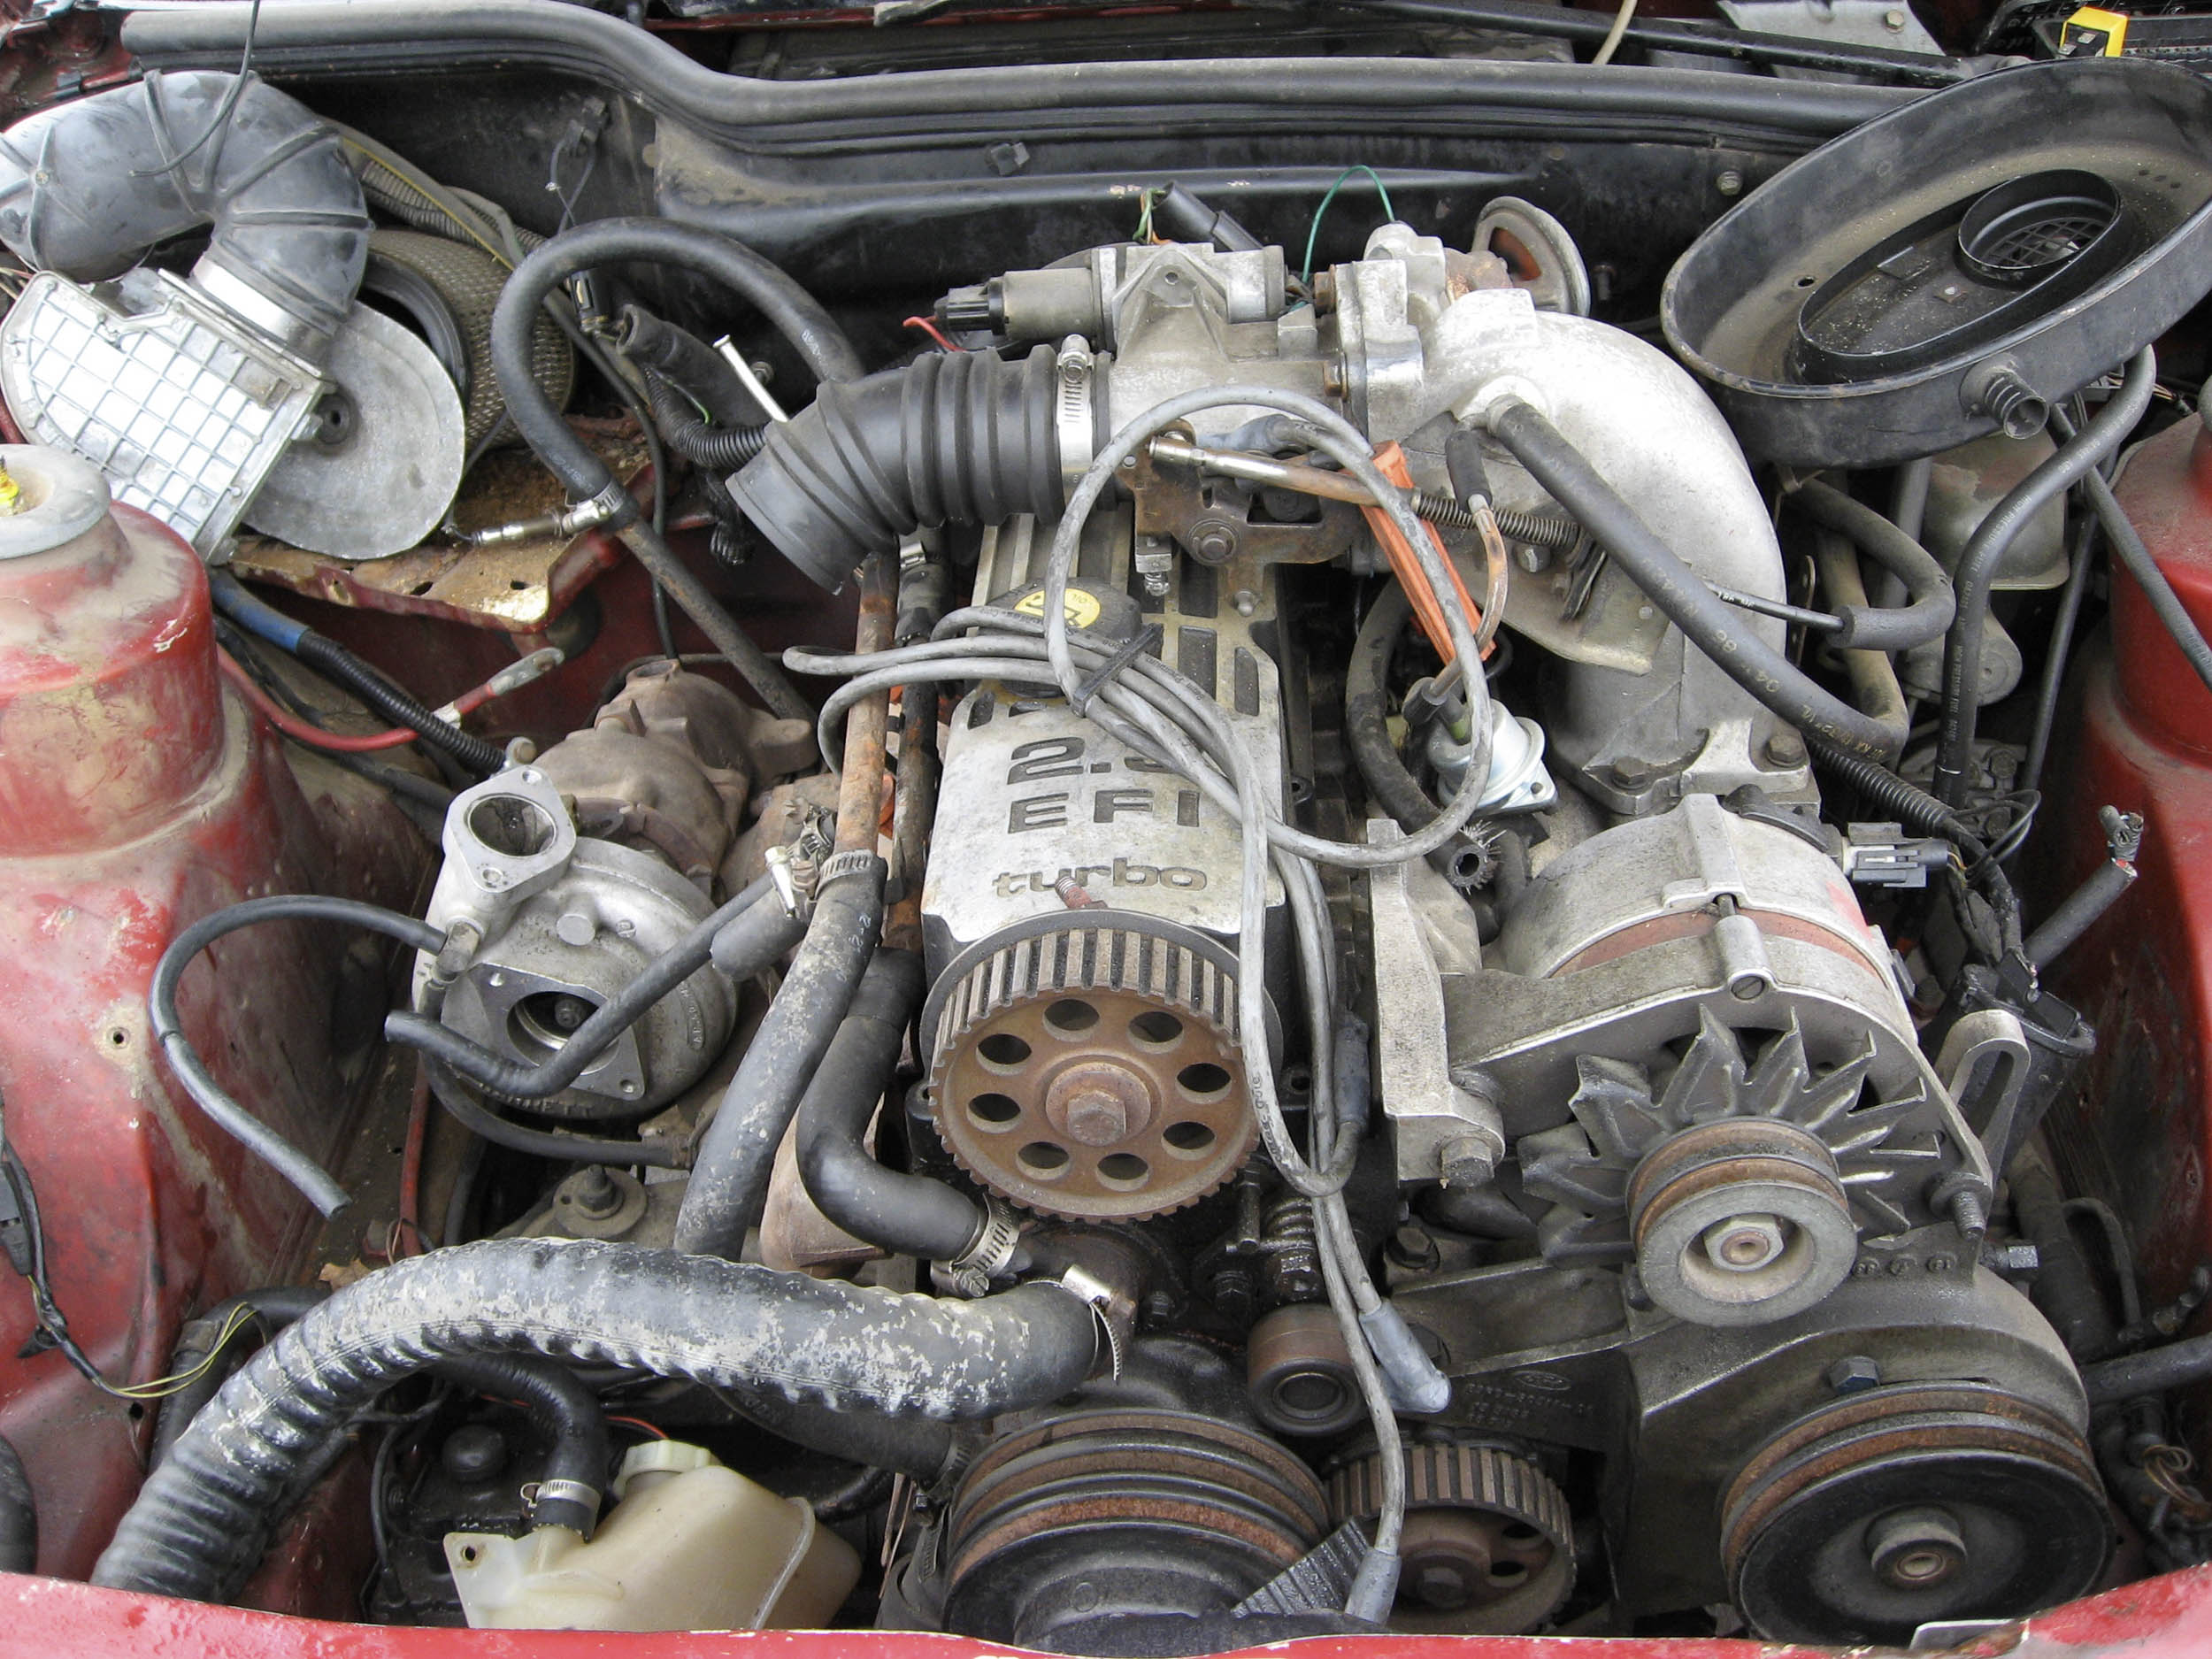 This 2.3-liter turbo had done its best but ended up in a boneyard Merkur XR4Ti.